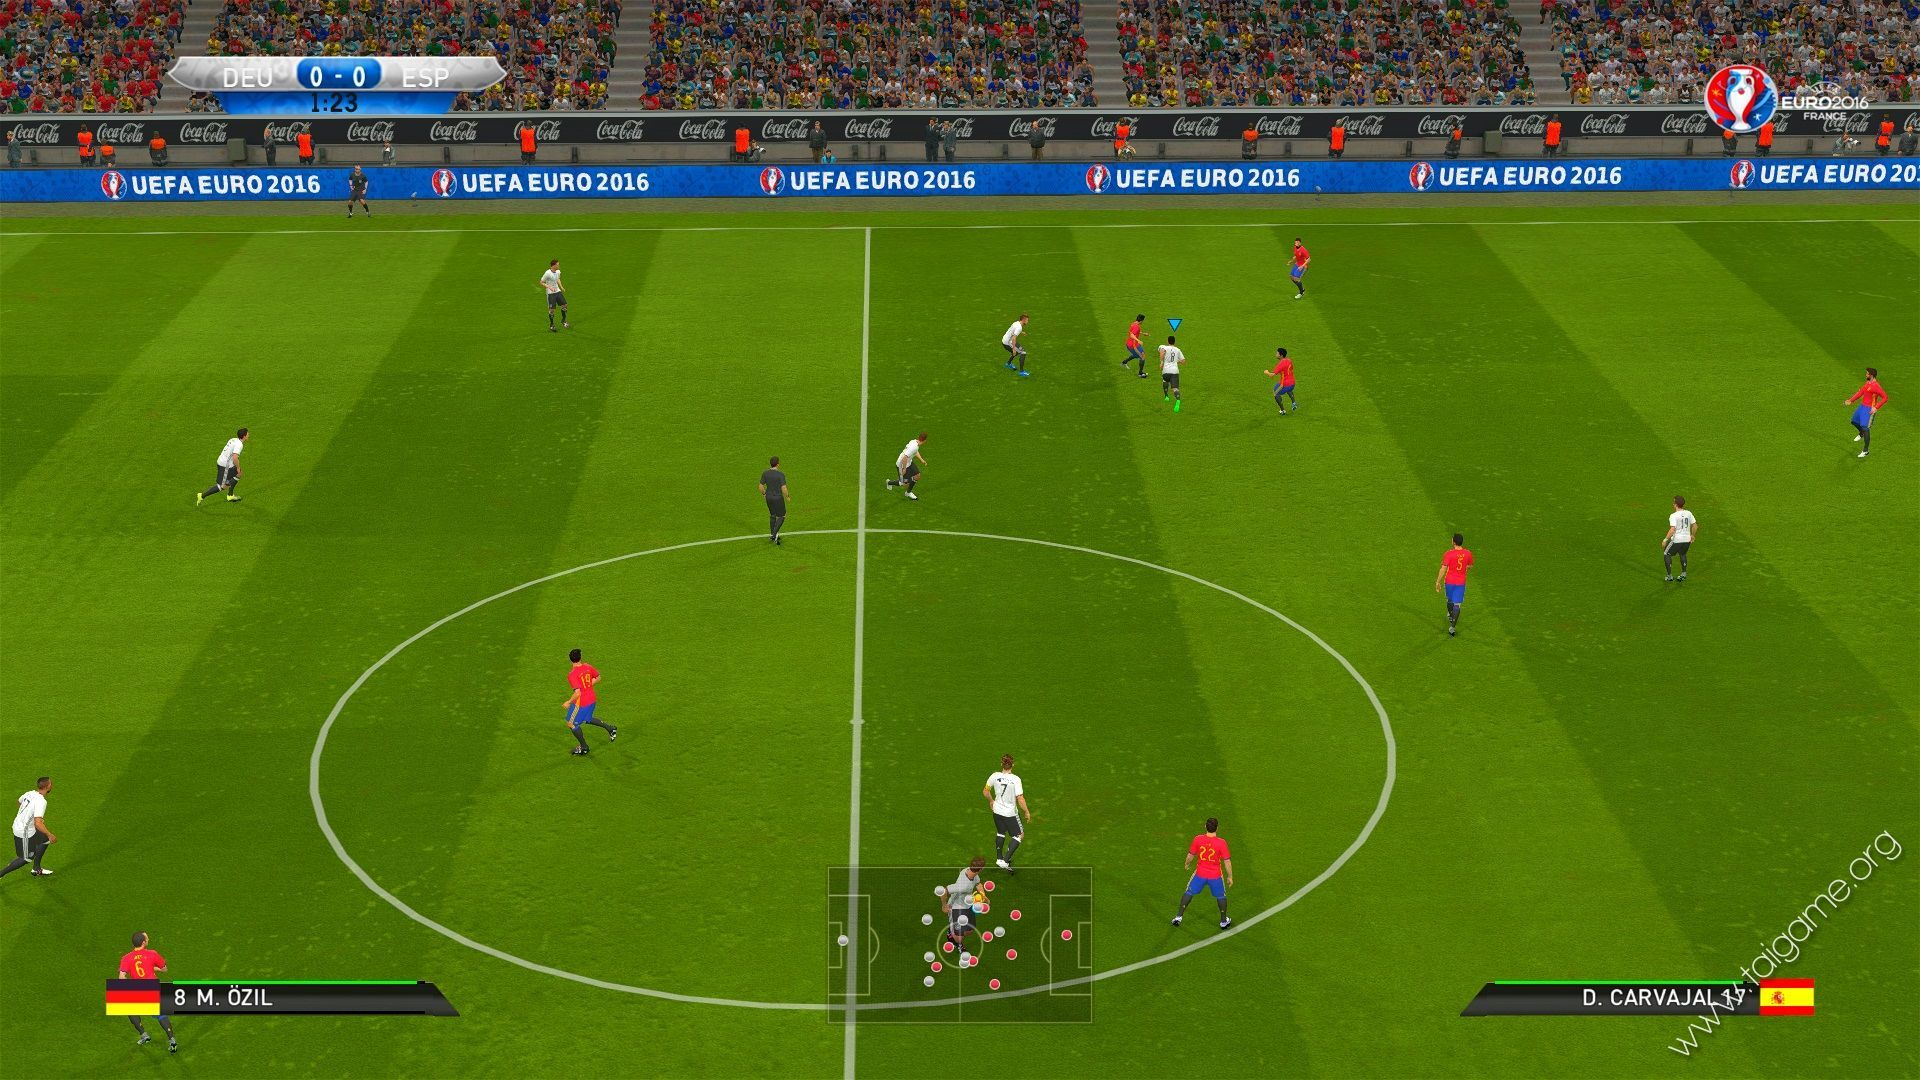 pes 2016 uefa euro 2016 france tai game download game th thao. Black Bedroom Furniture Sets. Home Design Ideas